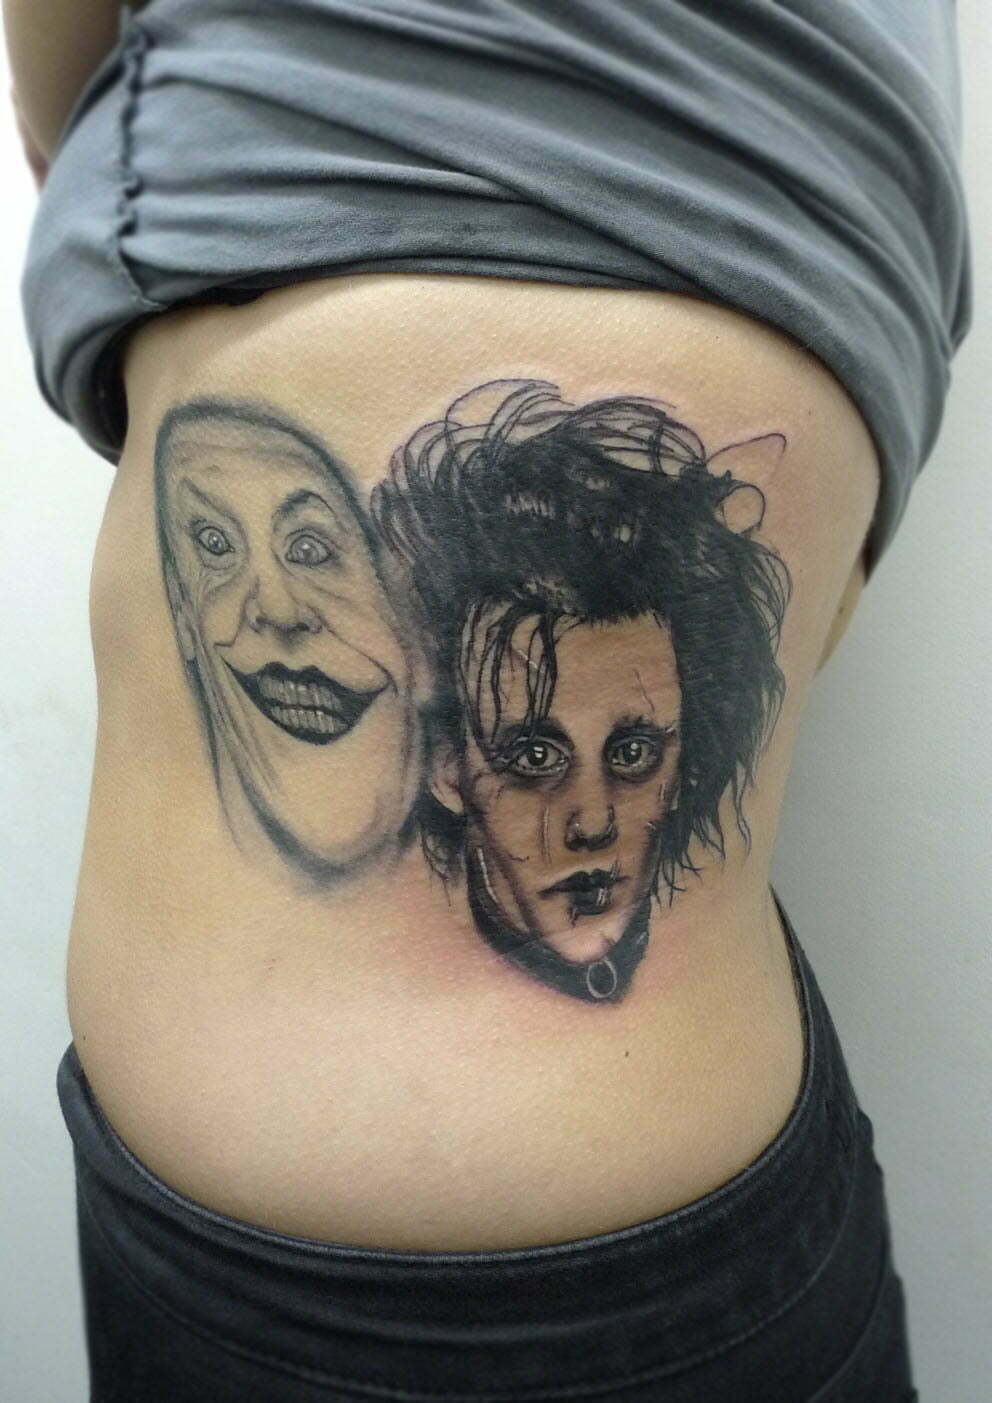 Scissorhands and Joker